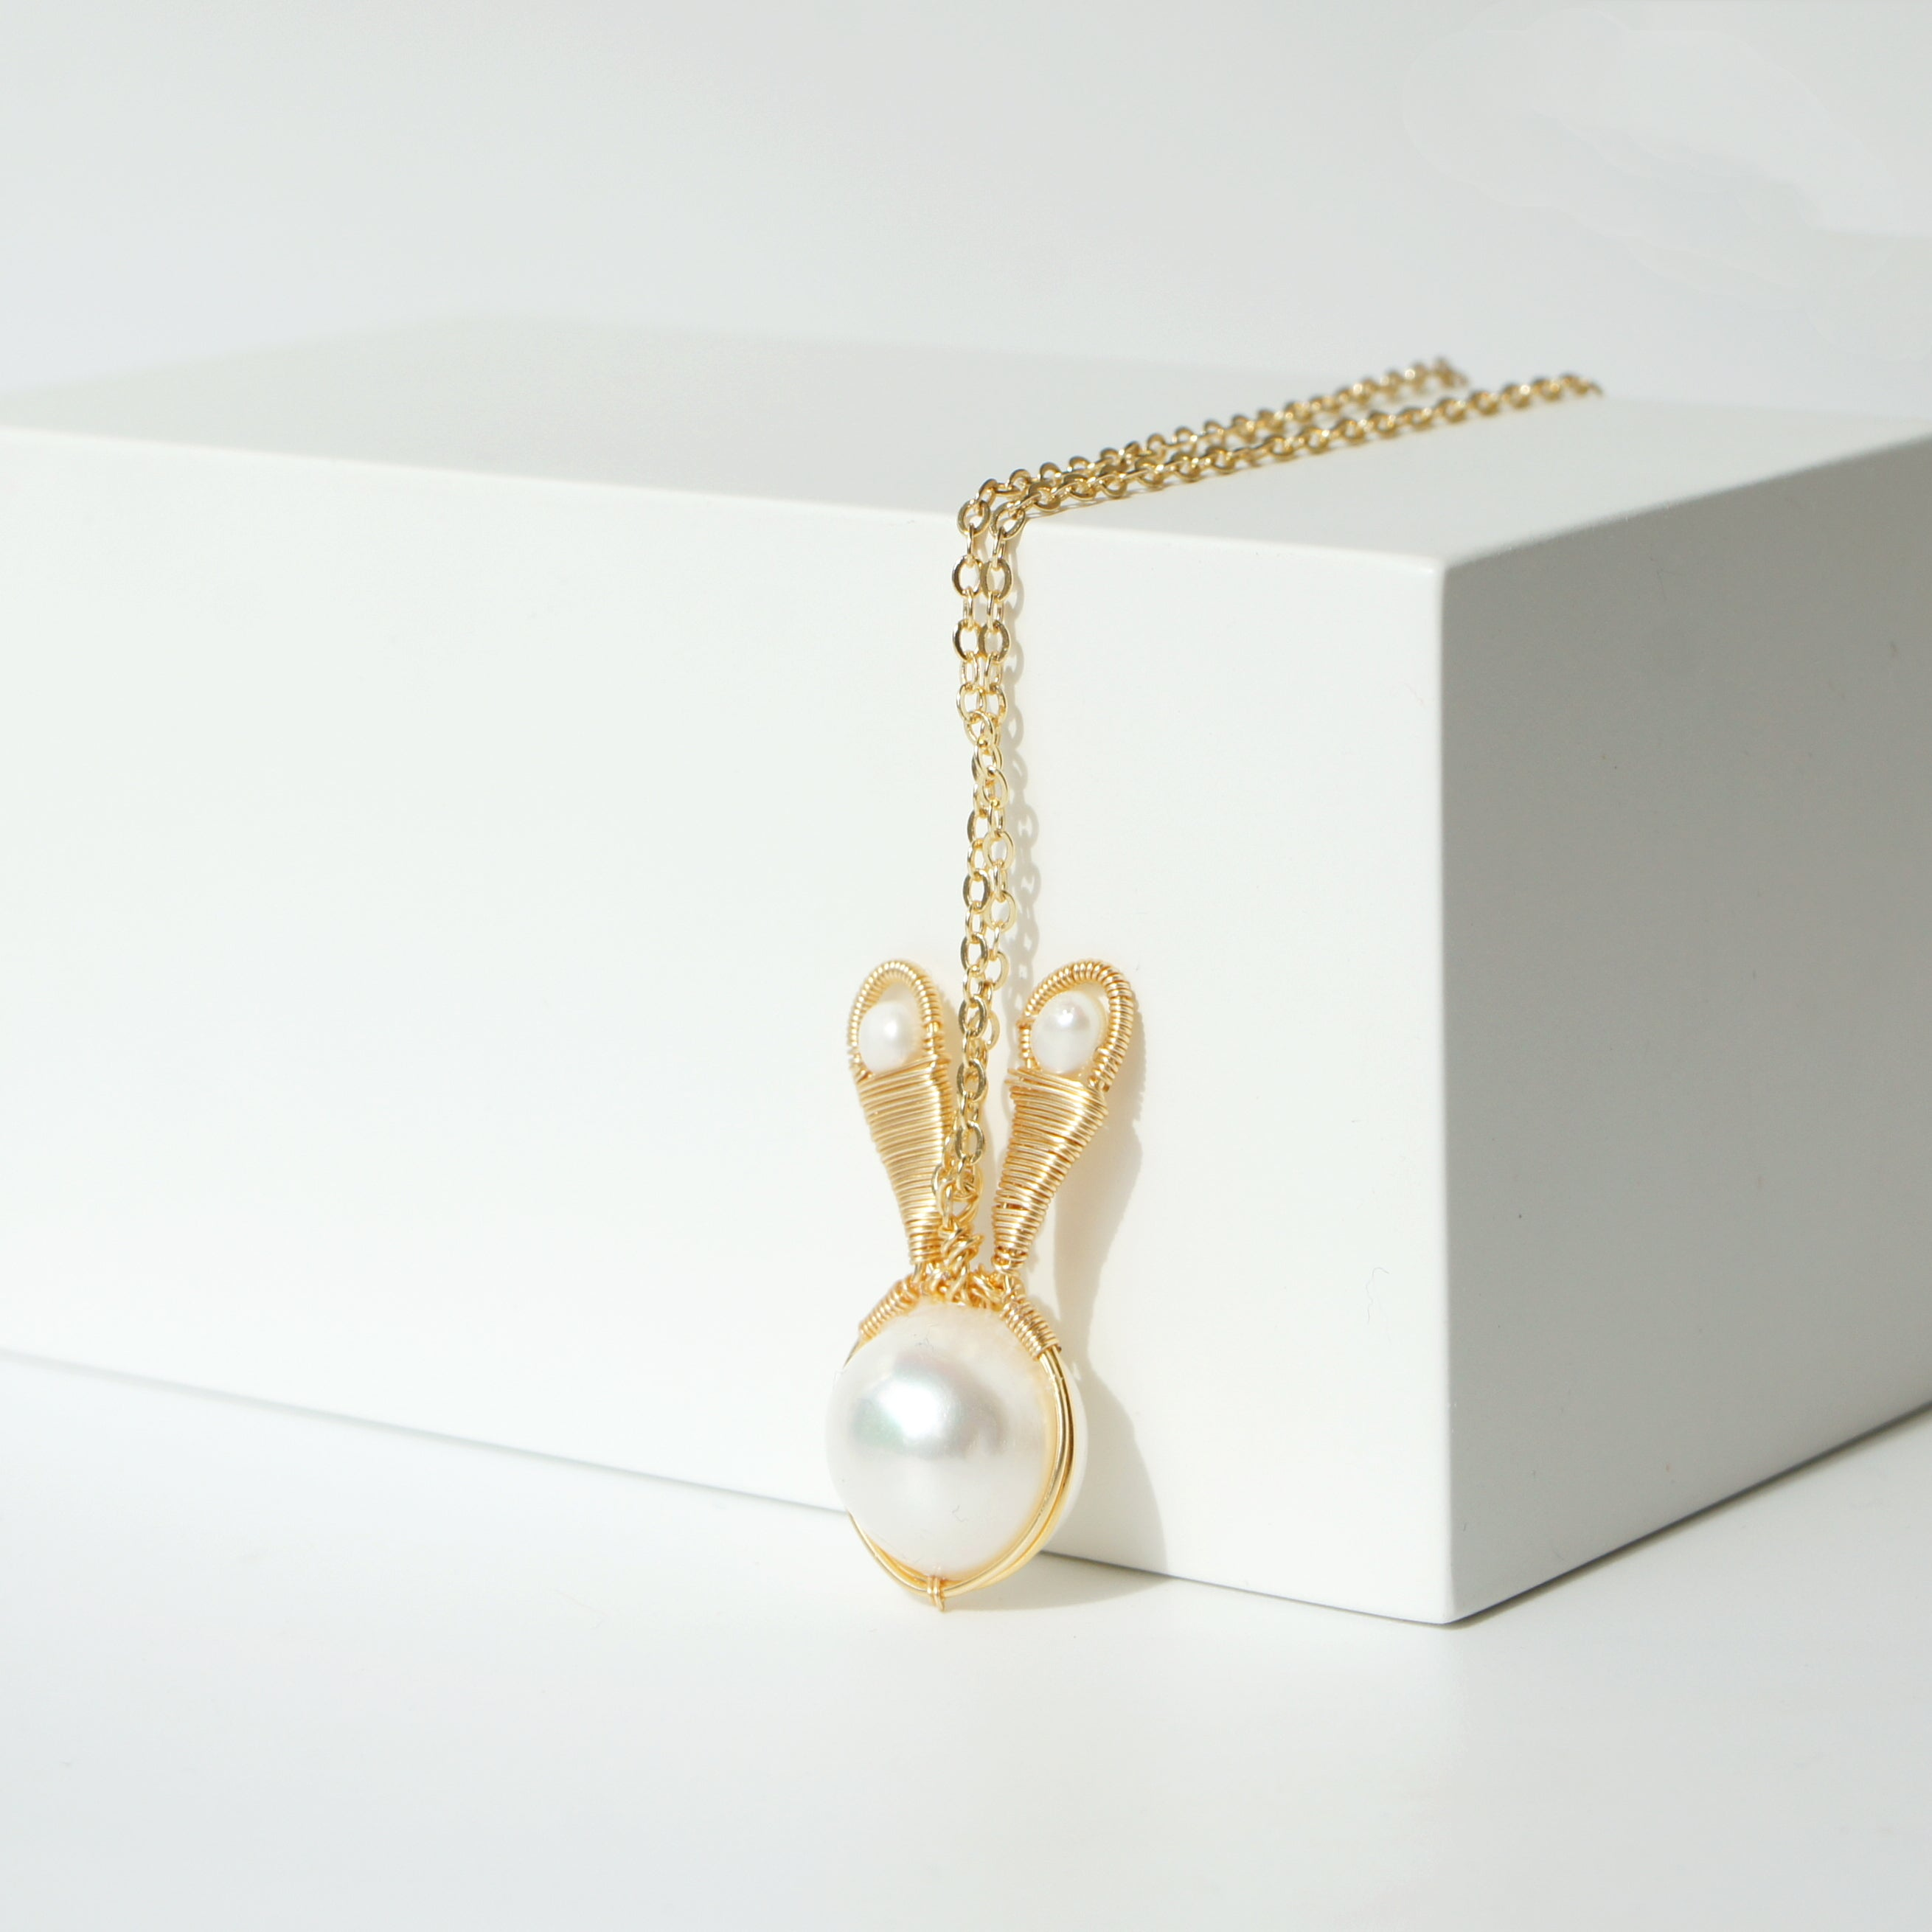 Pearl Bunny Necklace, 12mm Freshwater Pearl